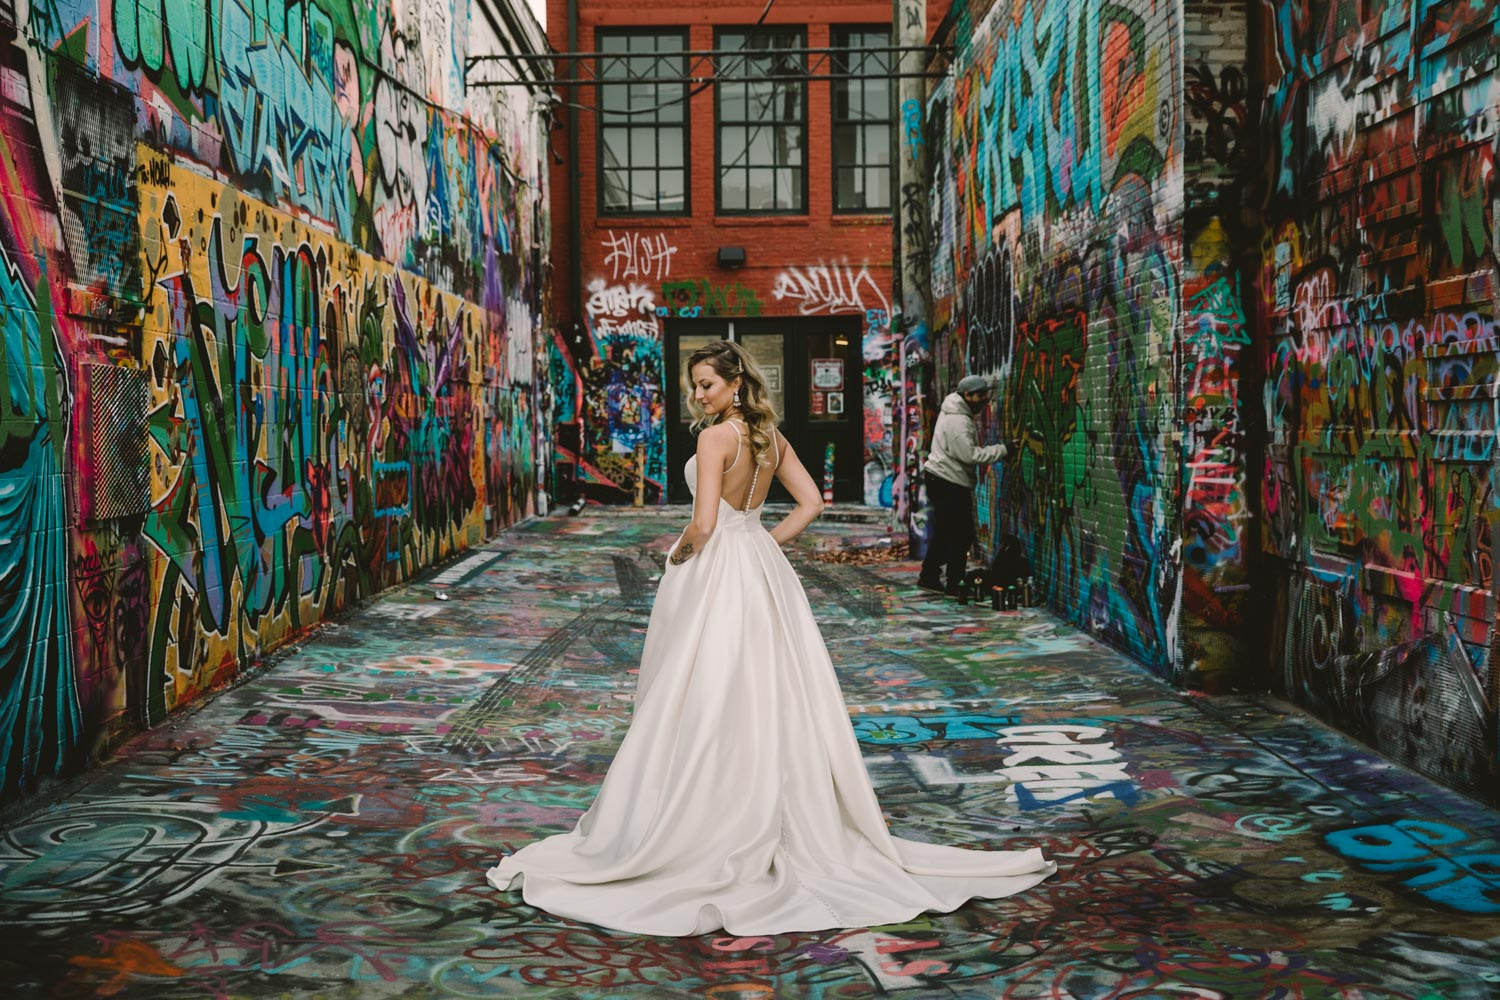 Washington DC Baltimore NYC graffitti alley street art Wedding Photographer63.jpg